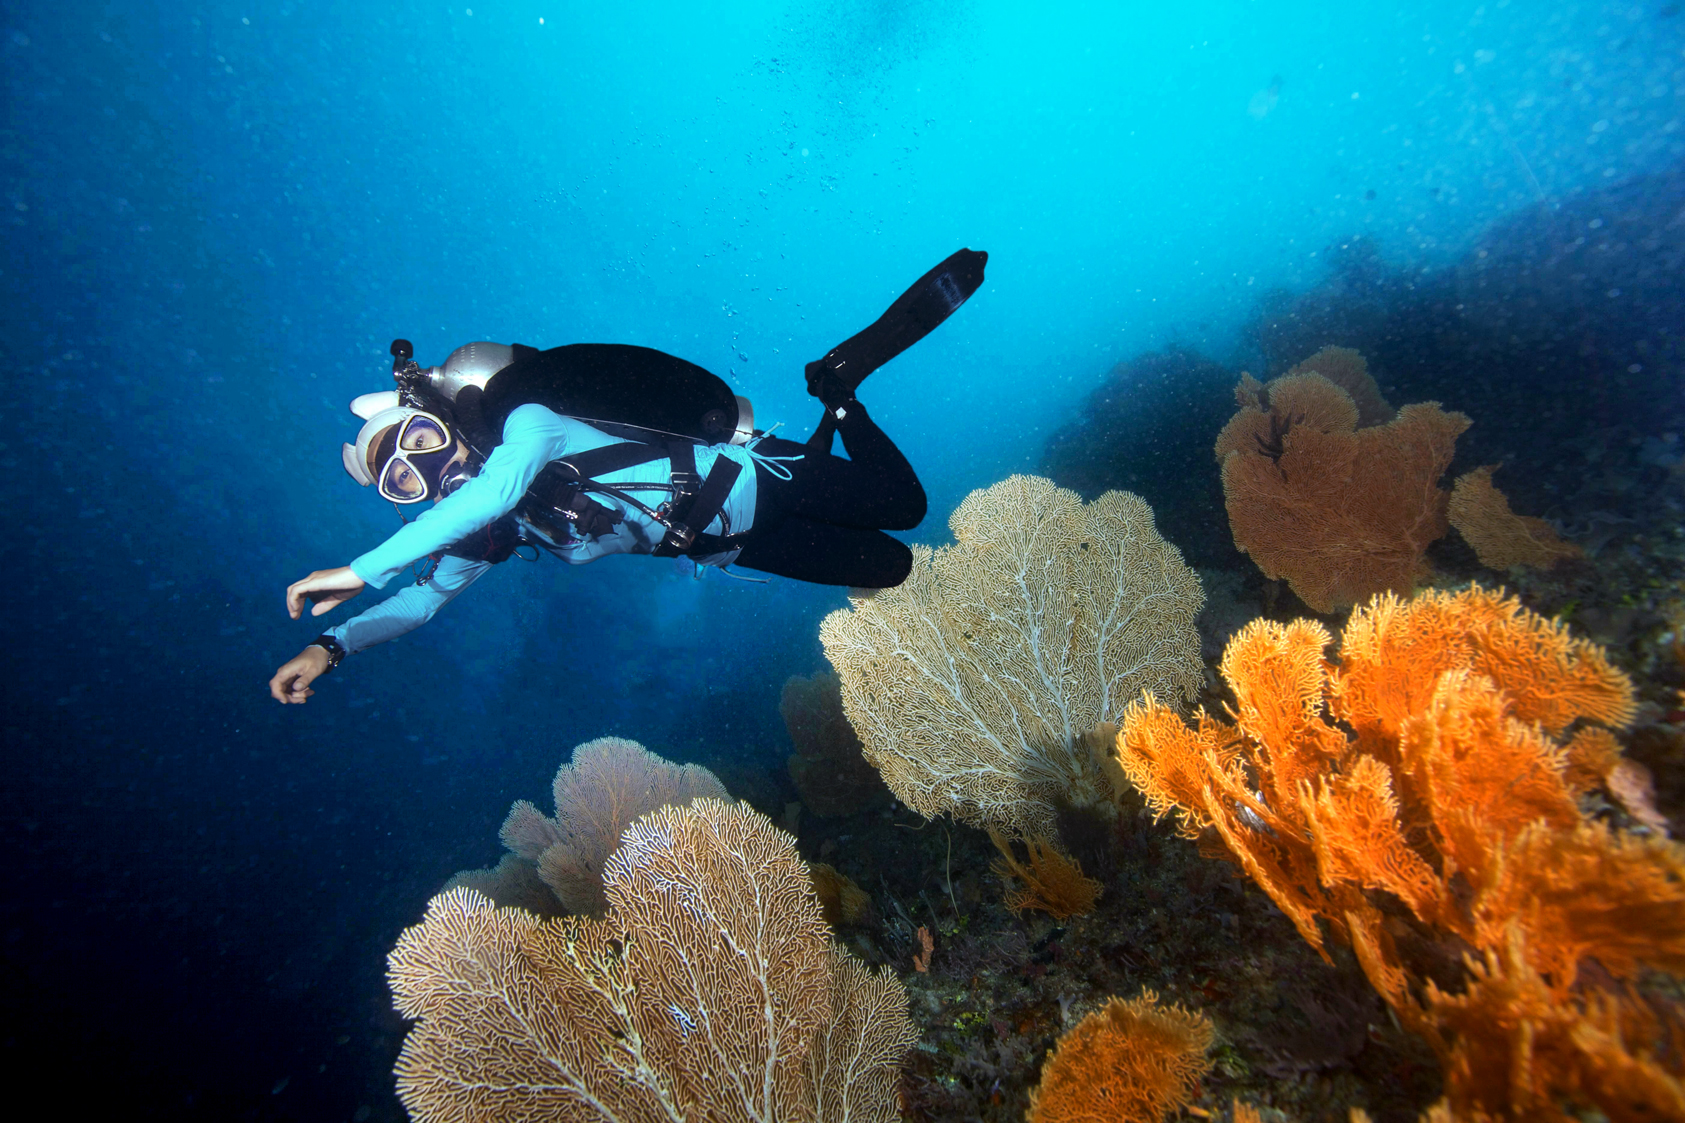 Diver hovering above a reef